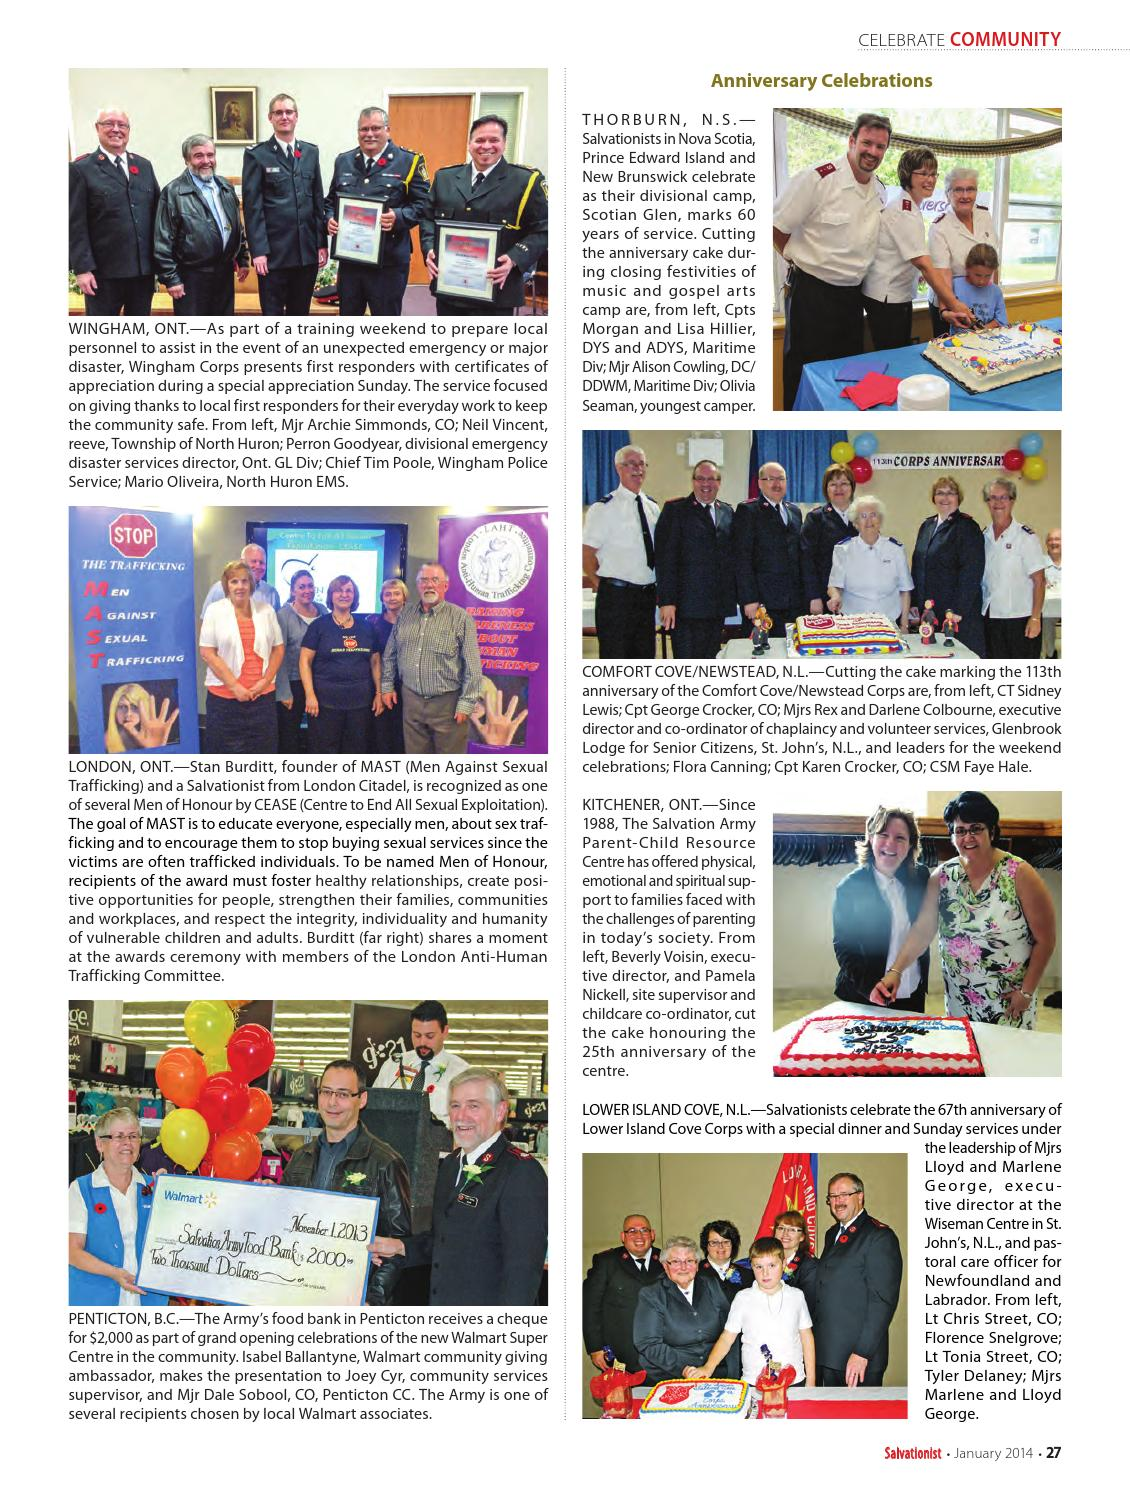 Salvationist - January 2014 by The Salvation Army - issuu